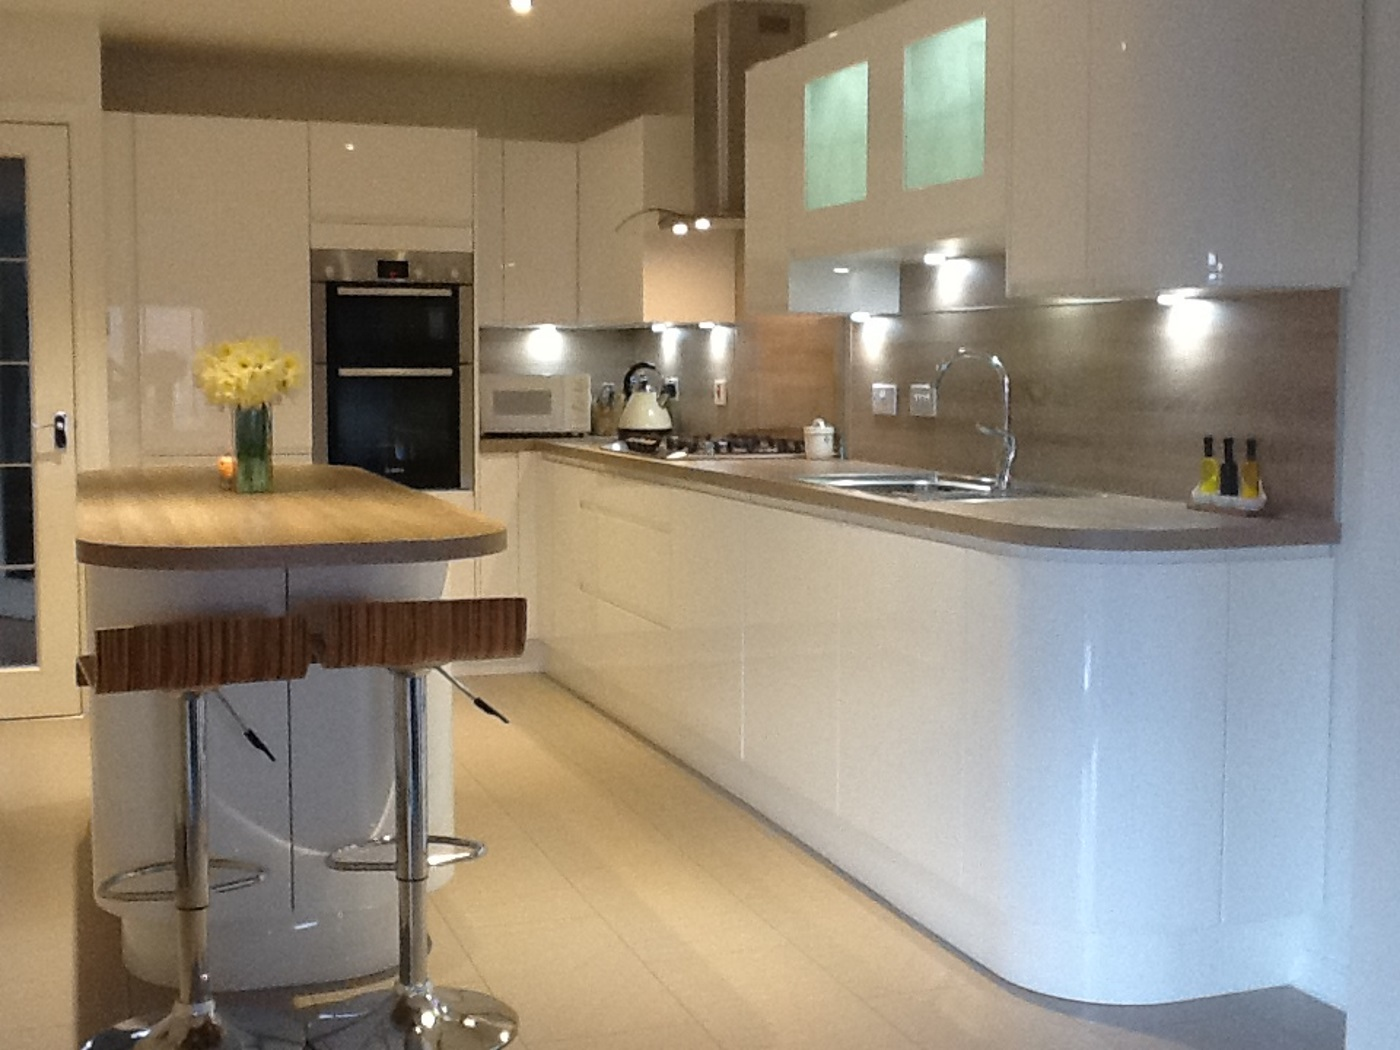 The finished handleless gloss kitchen